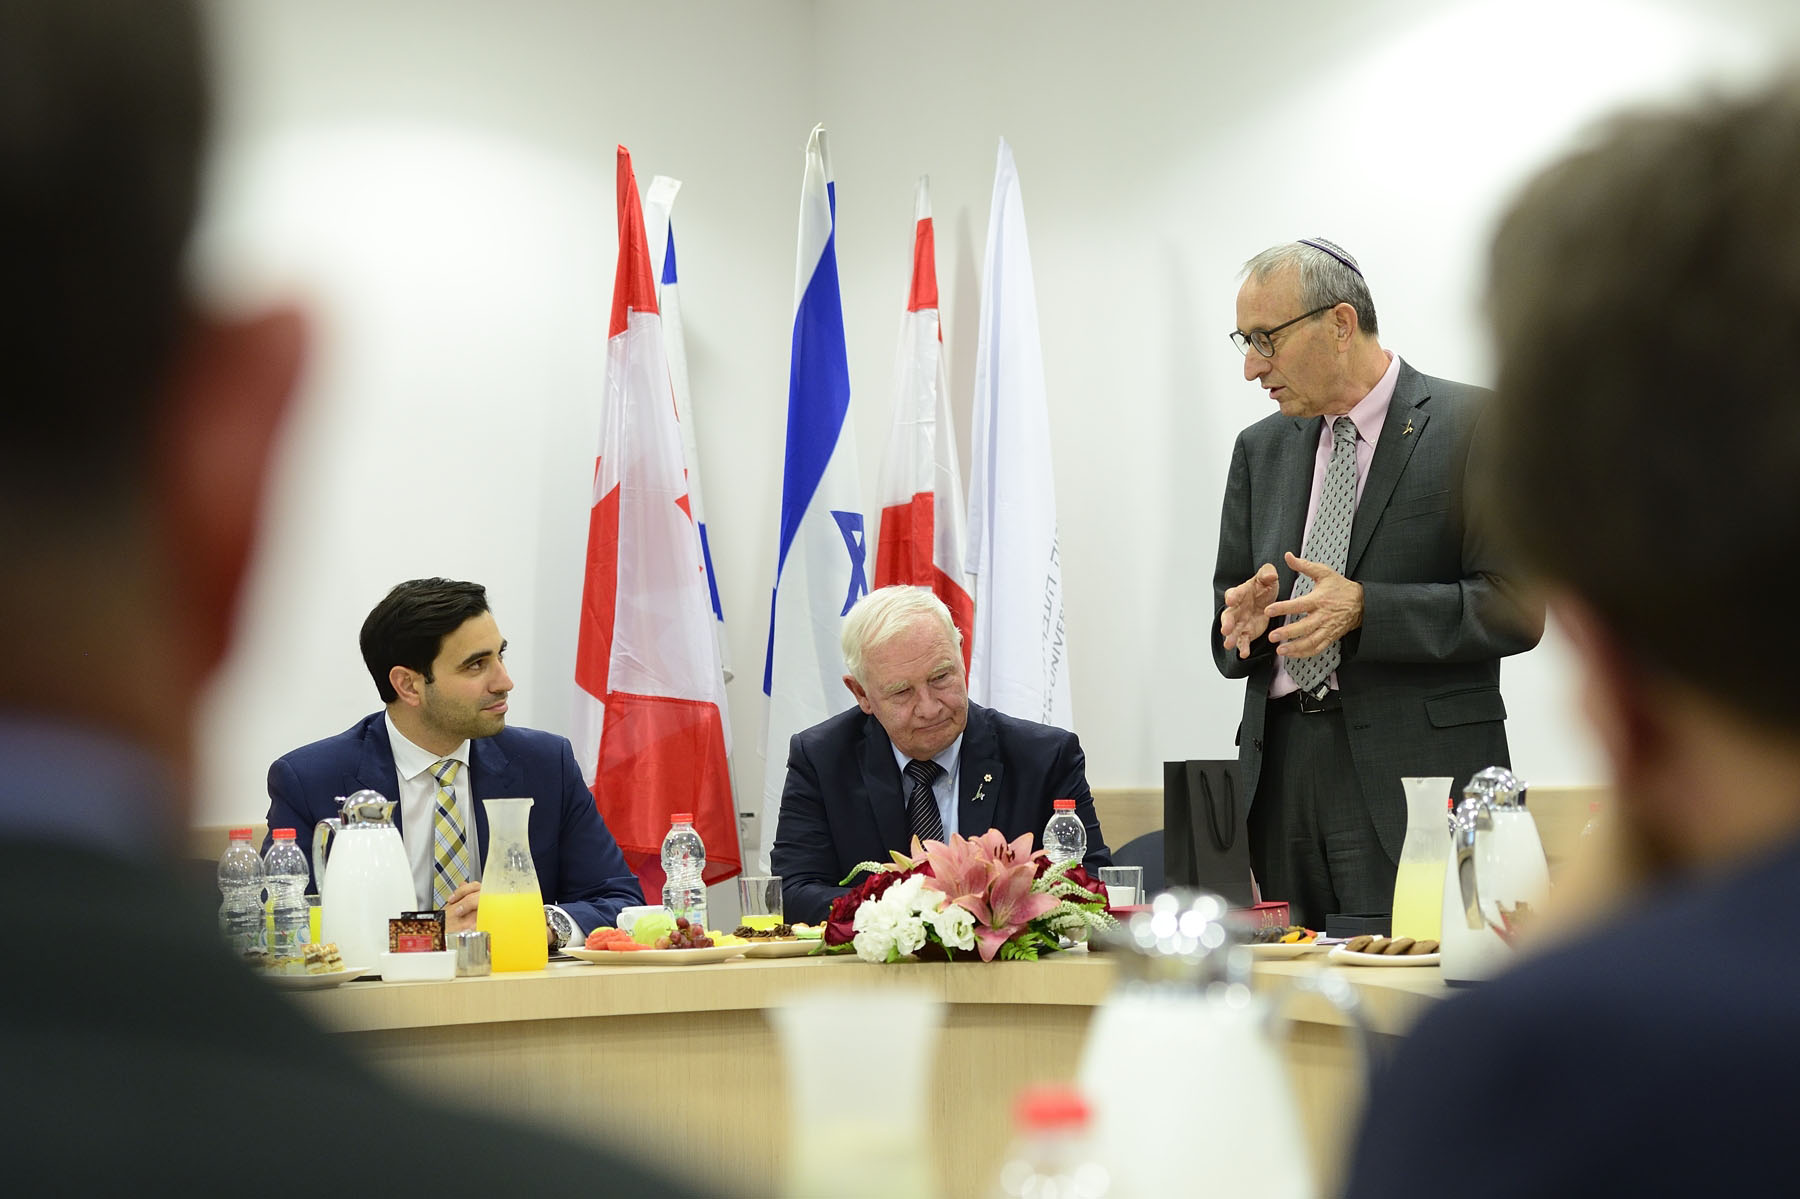 Their Excellencies and members from the Canadian delegation visited Institute for Medical Research Israel-Canada (IMRIC) to discuss successful collaborative medical research partnerships between Canada and Israel.